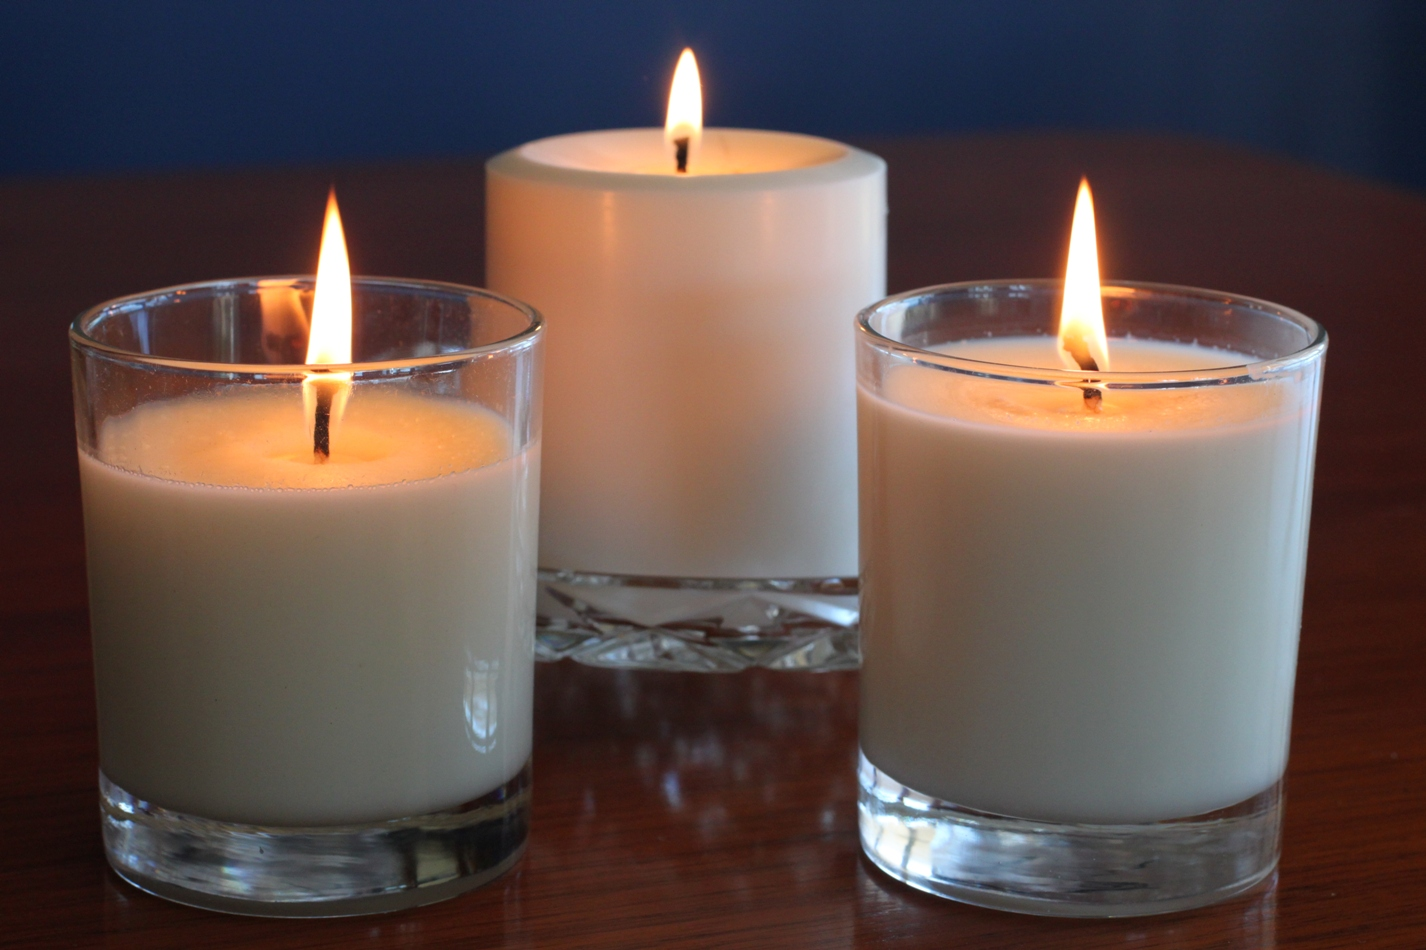 Candle soy wax